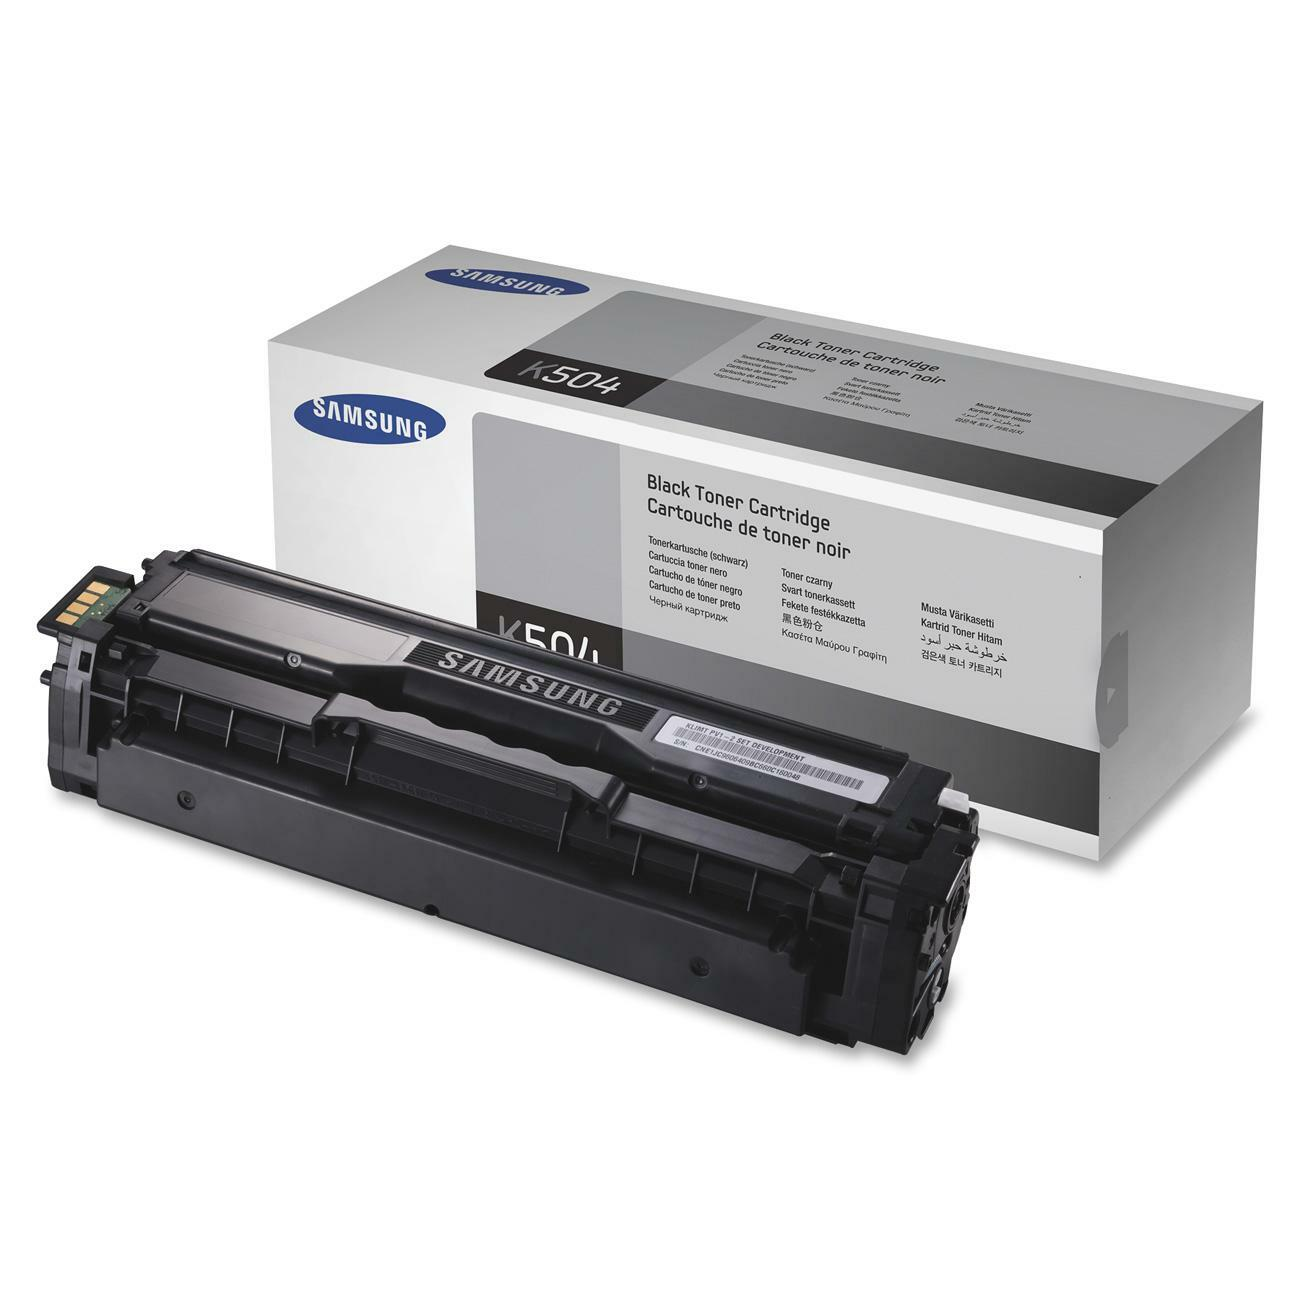 Samsung CLT-K504S Toner Cartridge - Black - Thumbnail 0